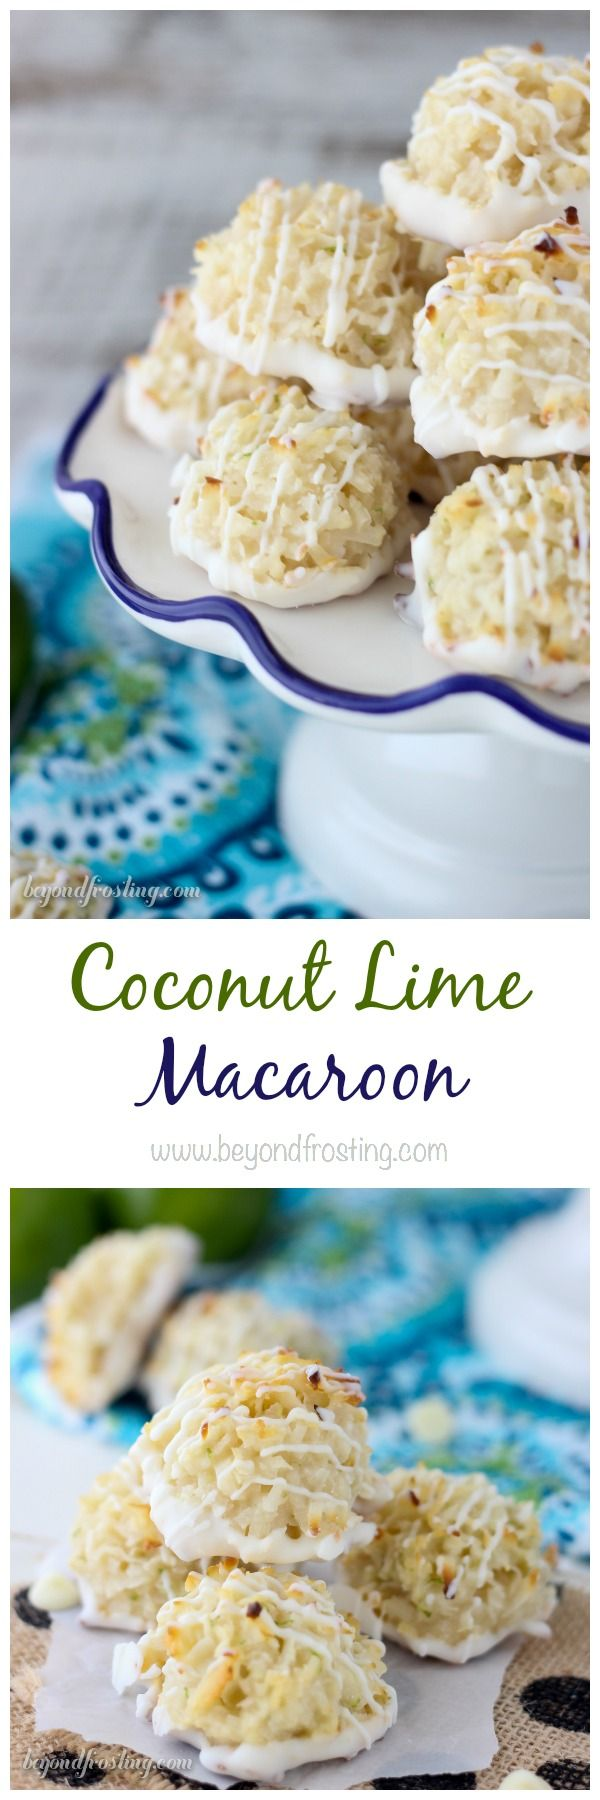 These simple coconut macaroons are made with sweetened condensed milk, shredded coconut and lime zest. Dip these in white chocolate and call it day. These are simply amazing.